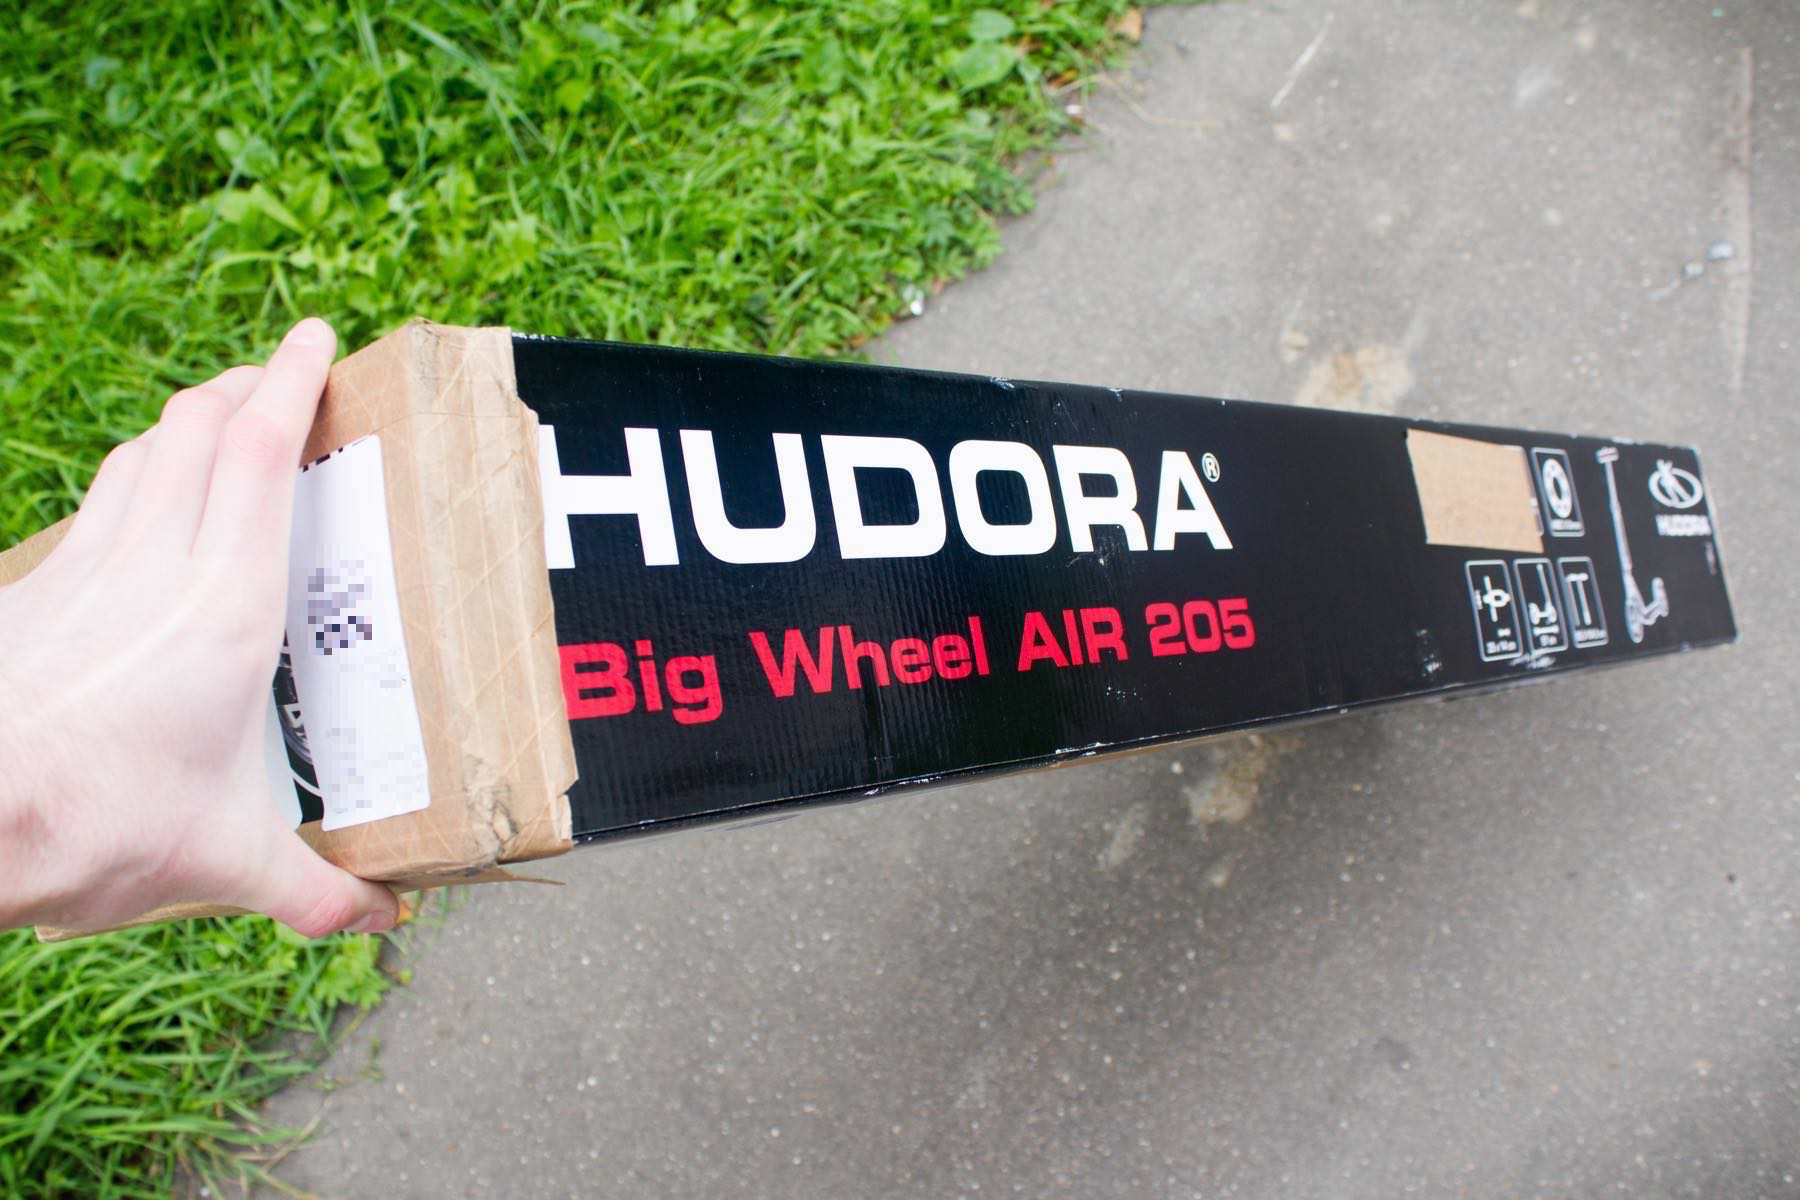 Hudora Big Wheel Air 205 Russia Review 00